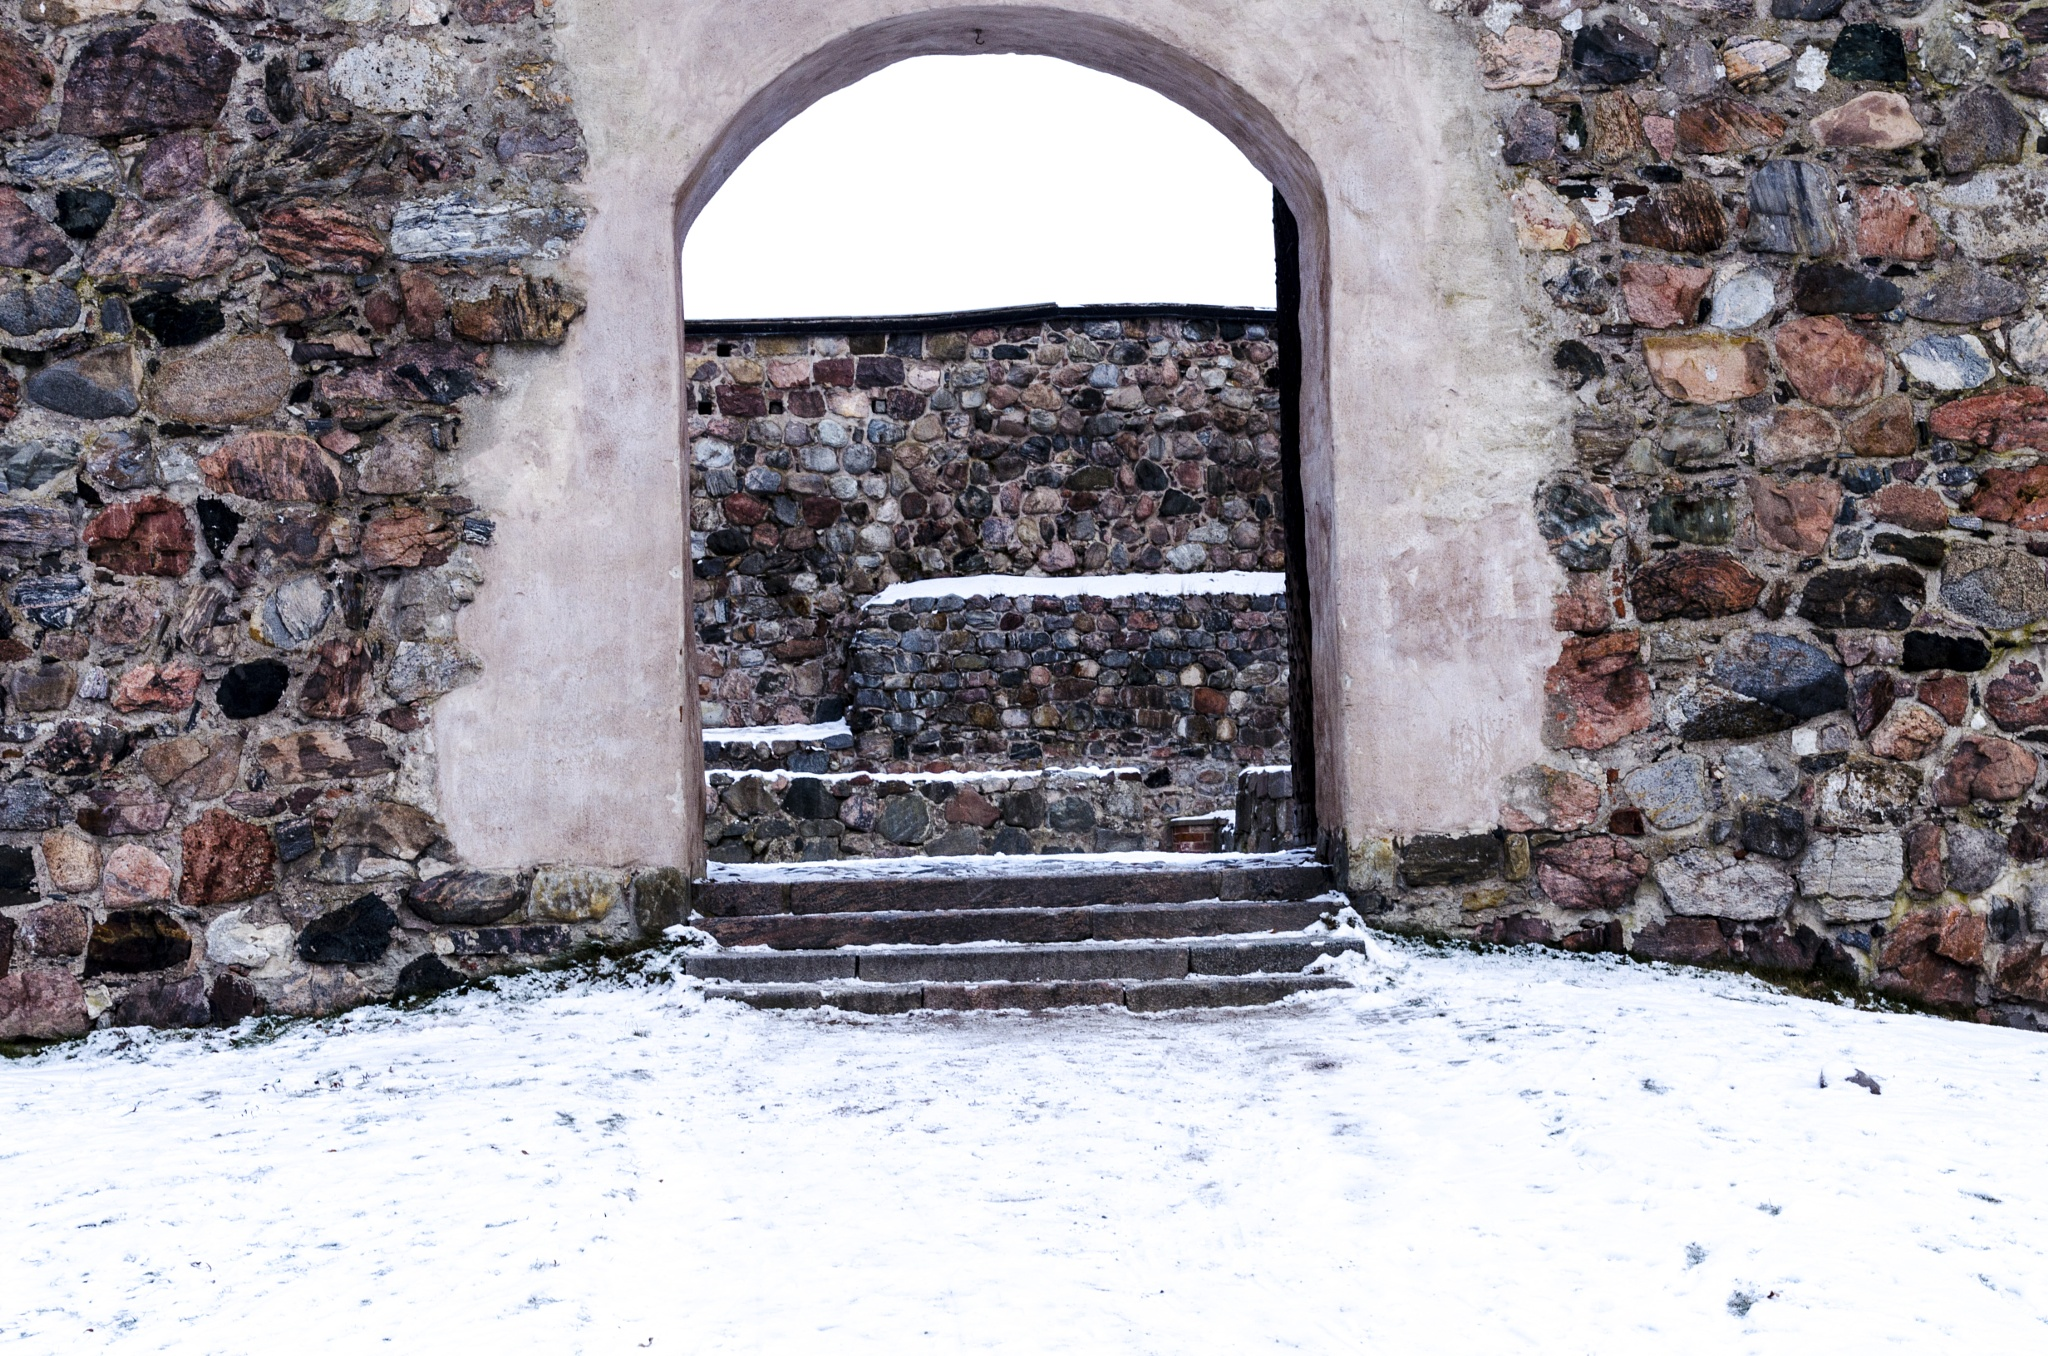 Another archway at Nyköpingshus by Johnny Lythell